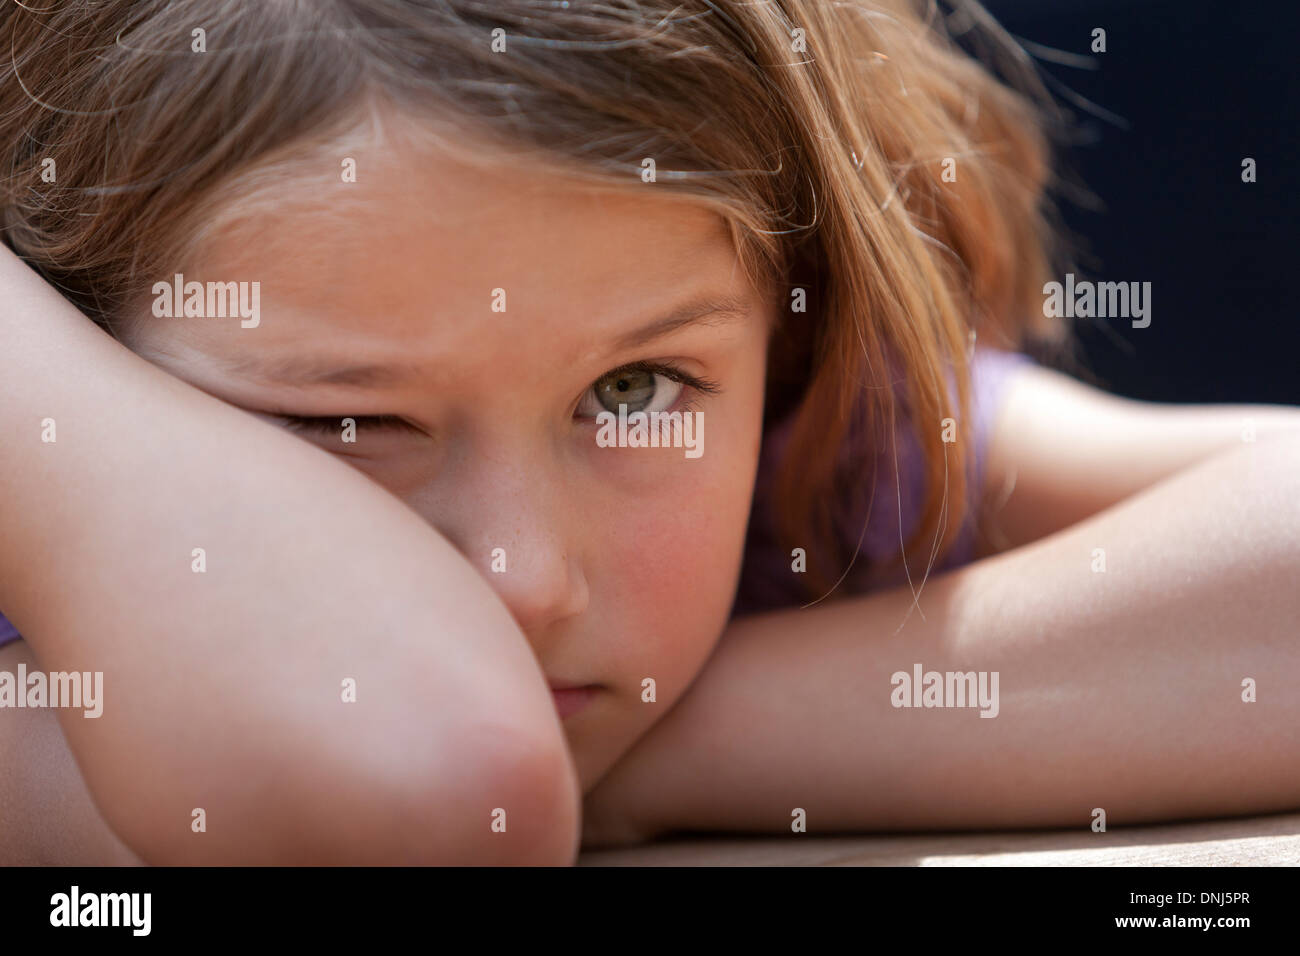 Portrait of a bad tempered 10 year old girl - Stock Image